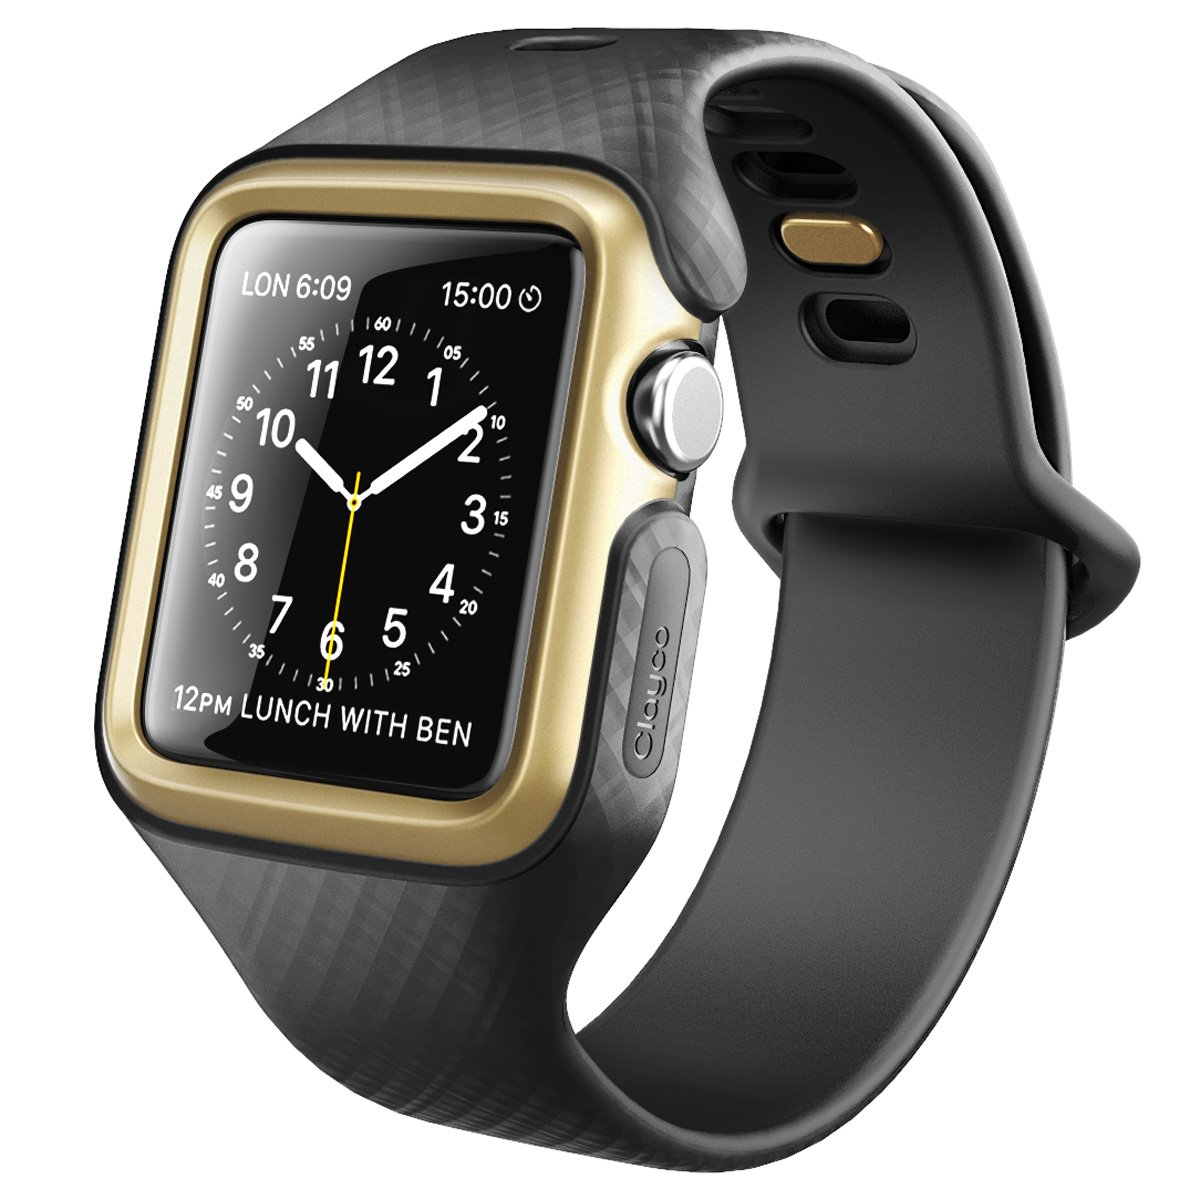 Clayco Apple Watch Band 42 mm, [Hera Series] Ultra Slim Protective Shock Resistant Bumper Case with Strap Bands for 42mm Apple Watch Series 3 2017/Series 2/Series 1 (Black/Gold) by Clayco